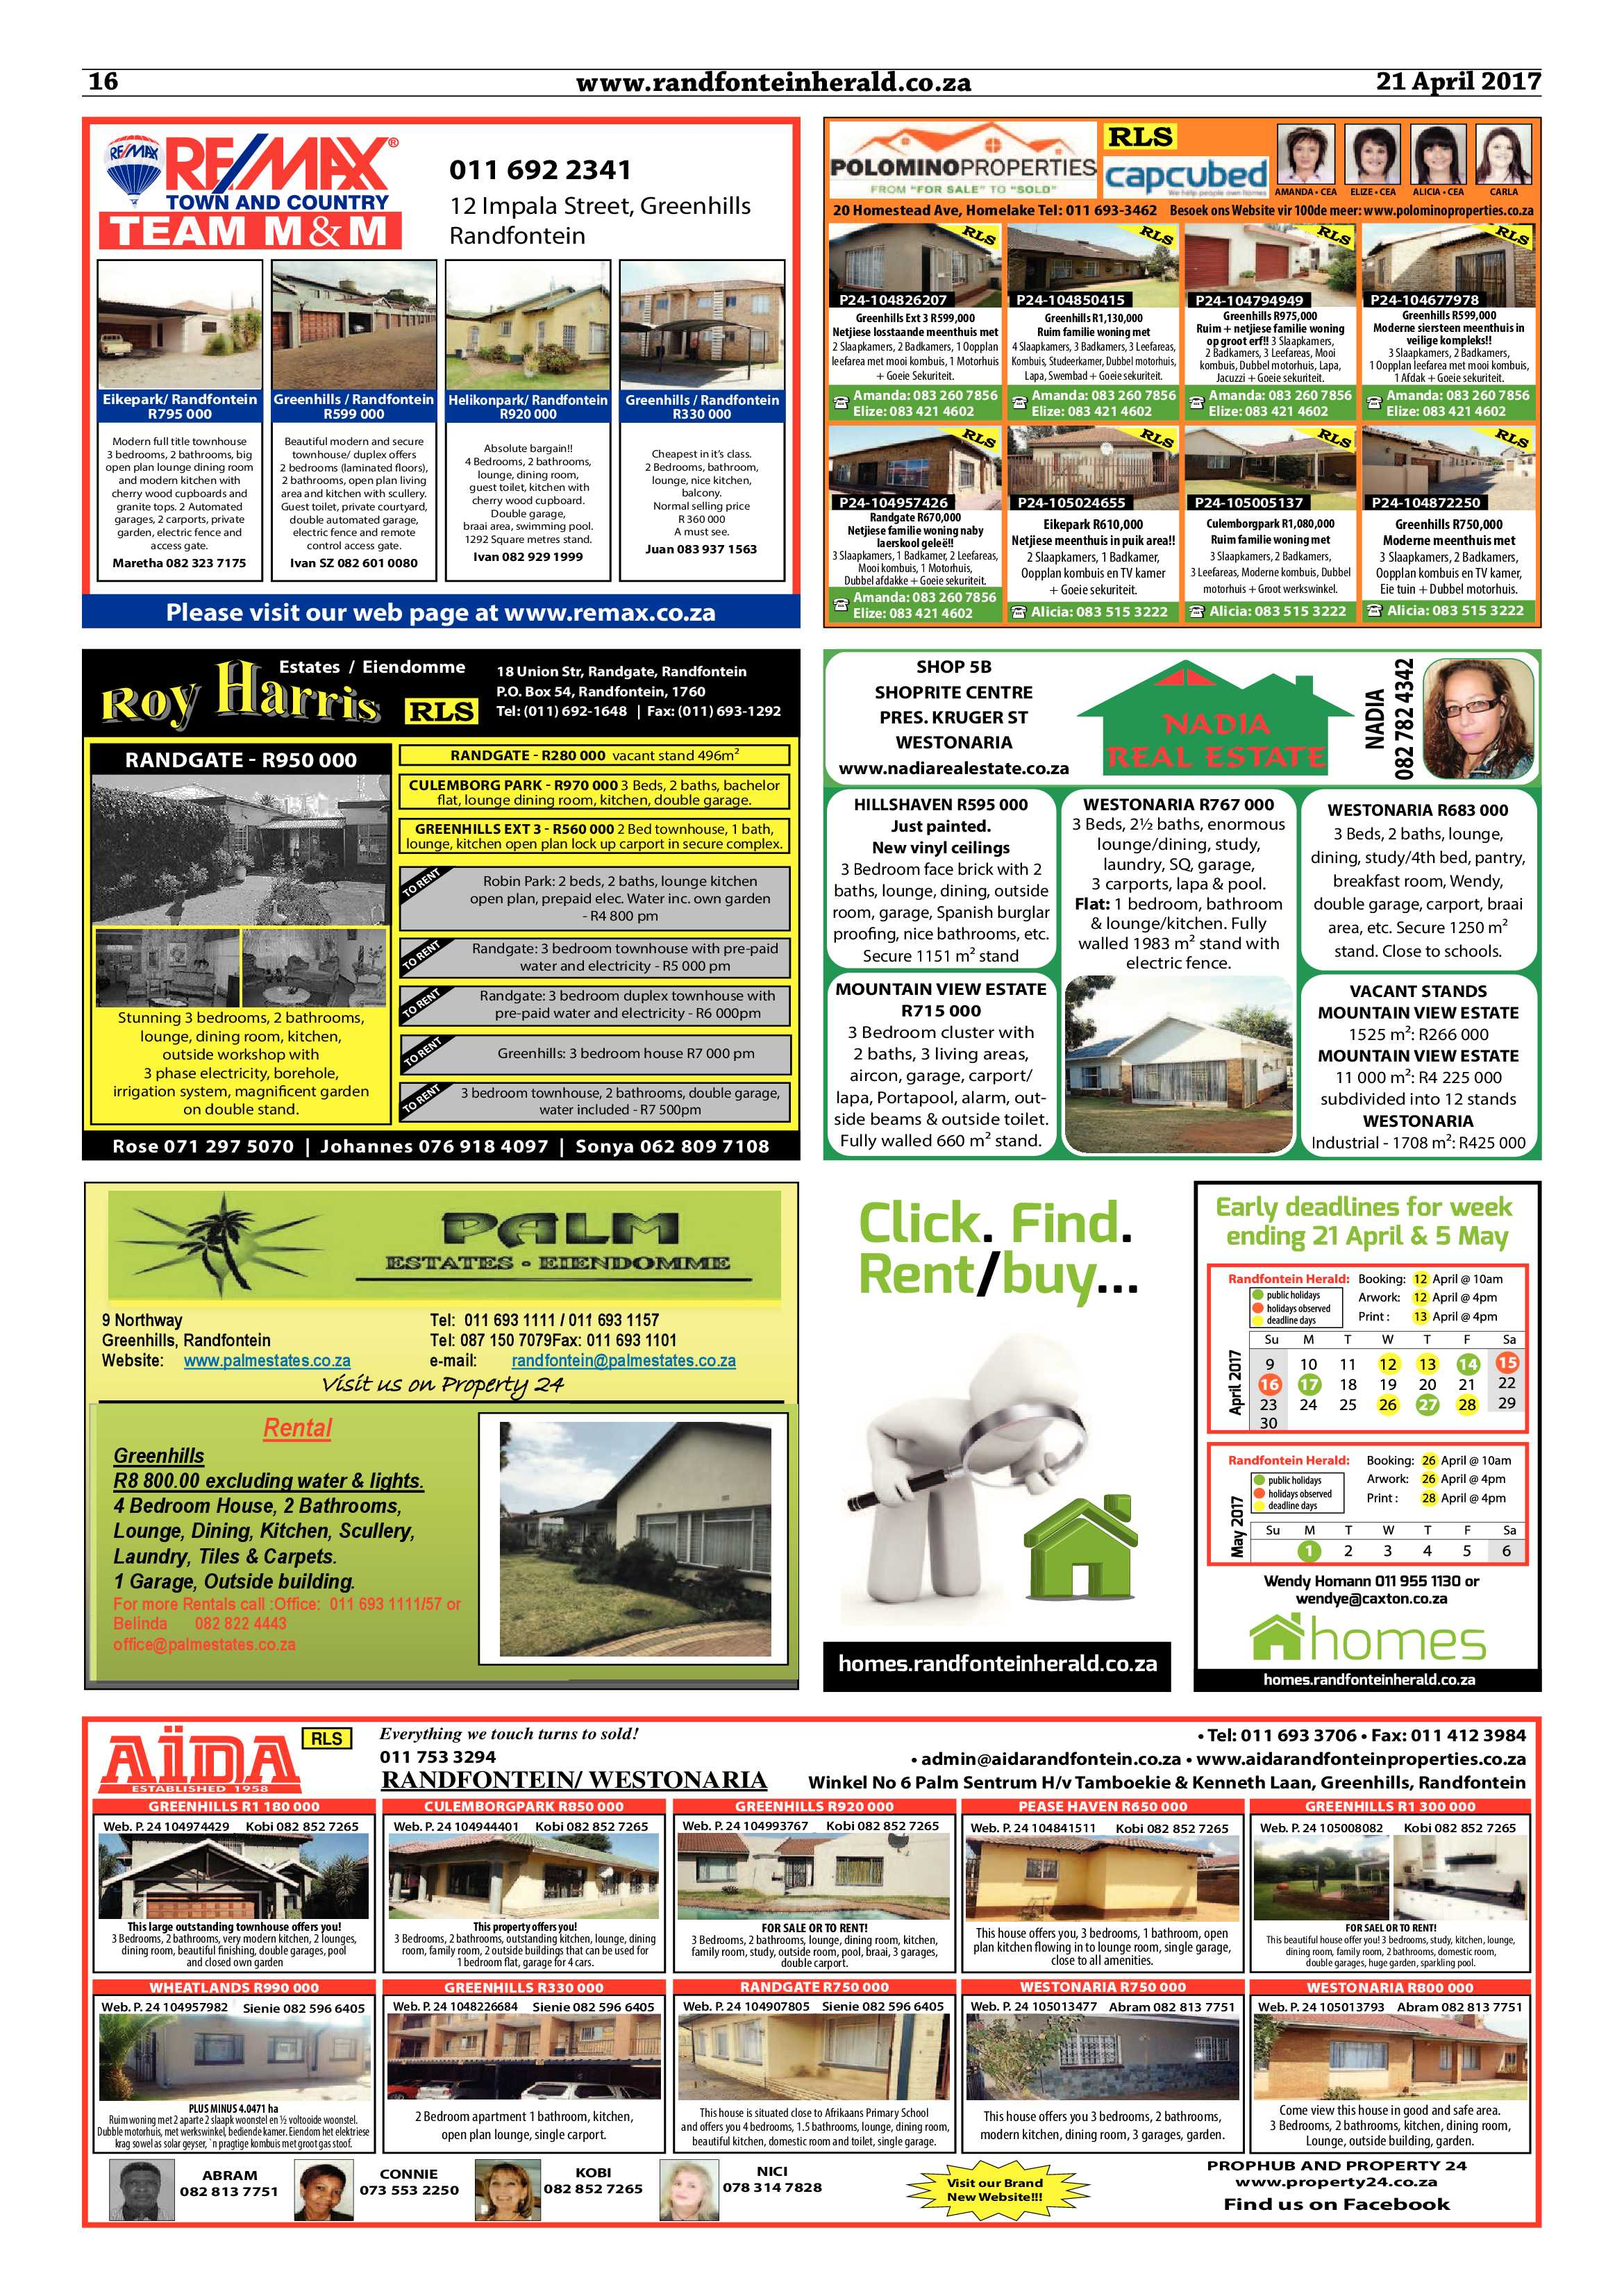 randfontein-herald-21-april-2017-epapers-page-16